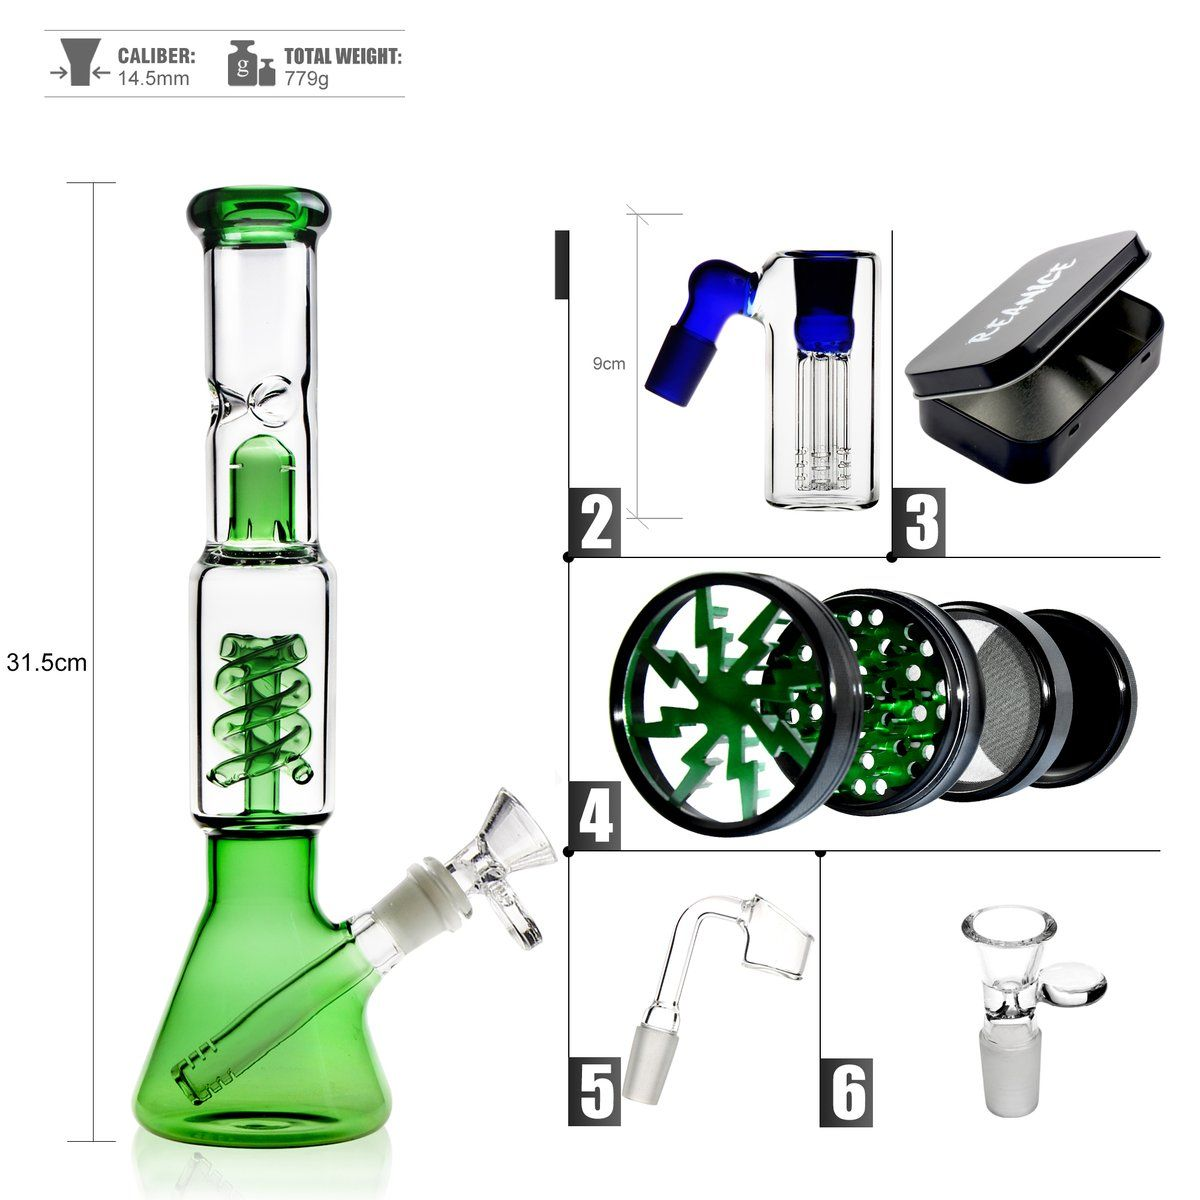 The Green is applied evenly throughout the bong to give it